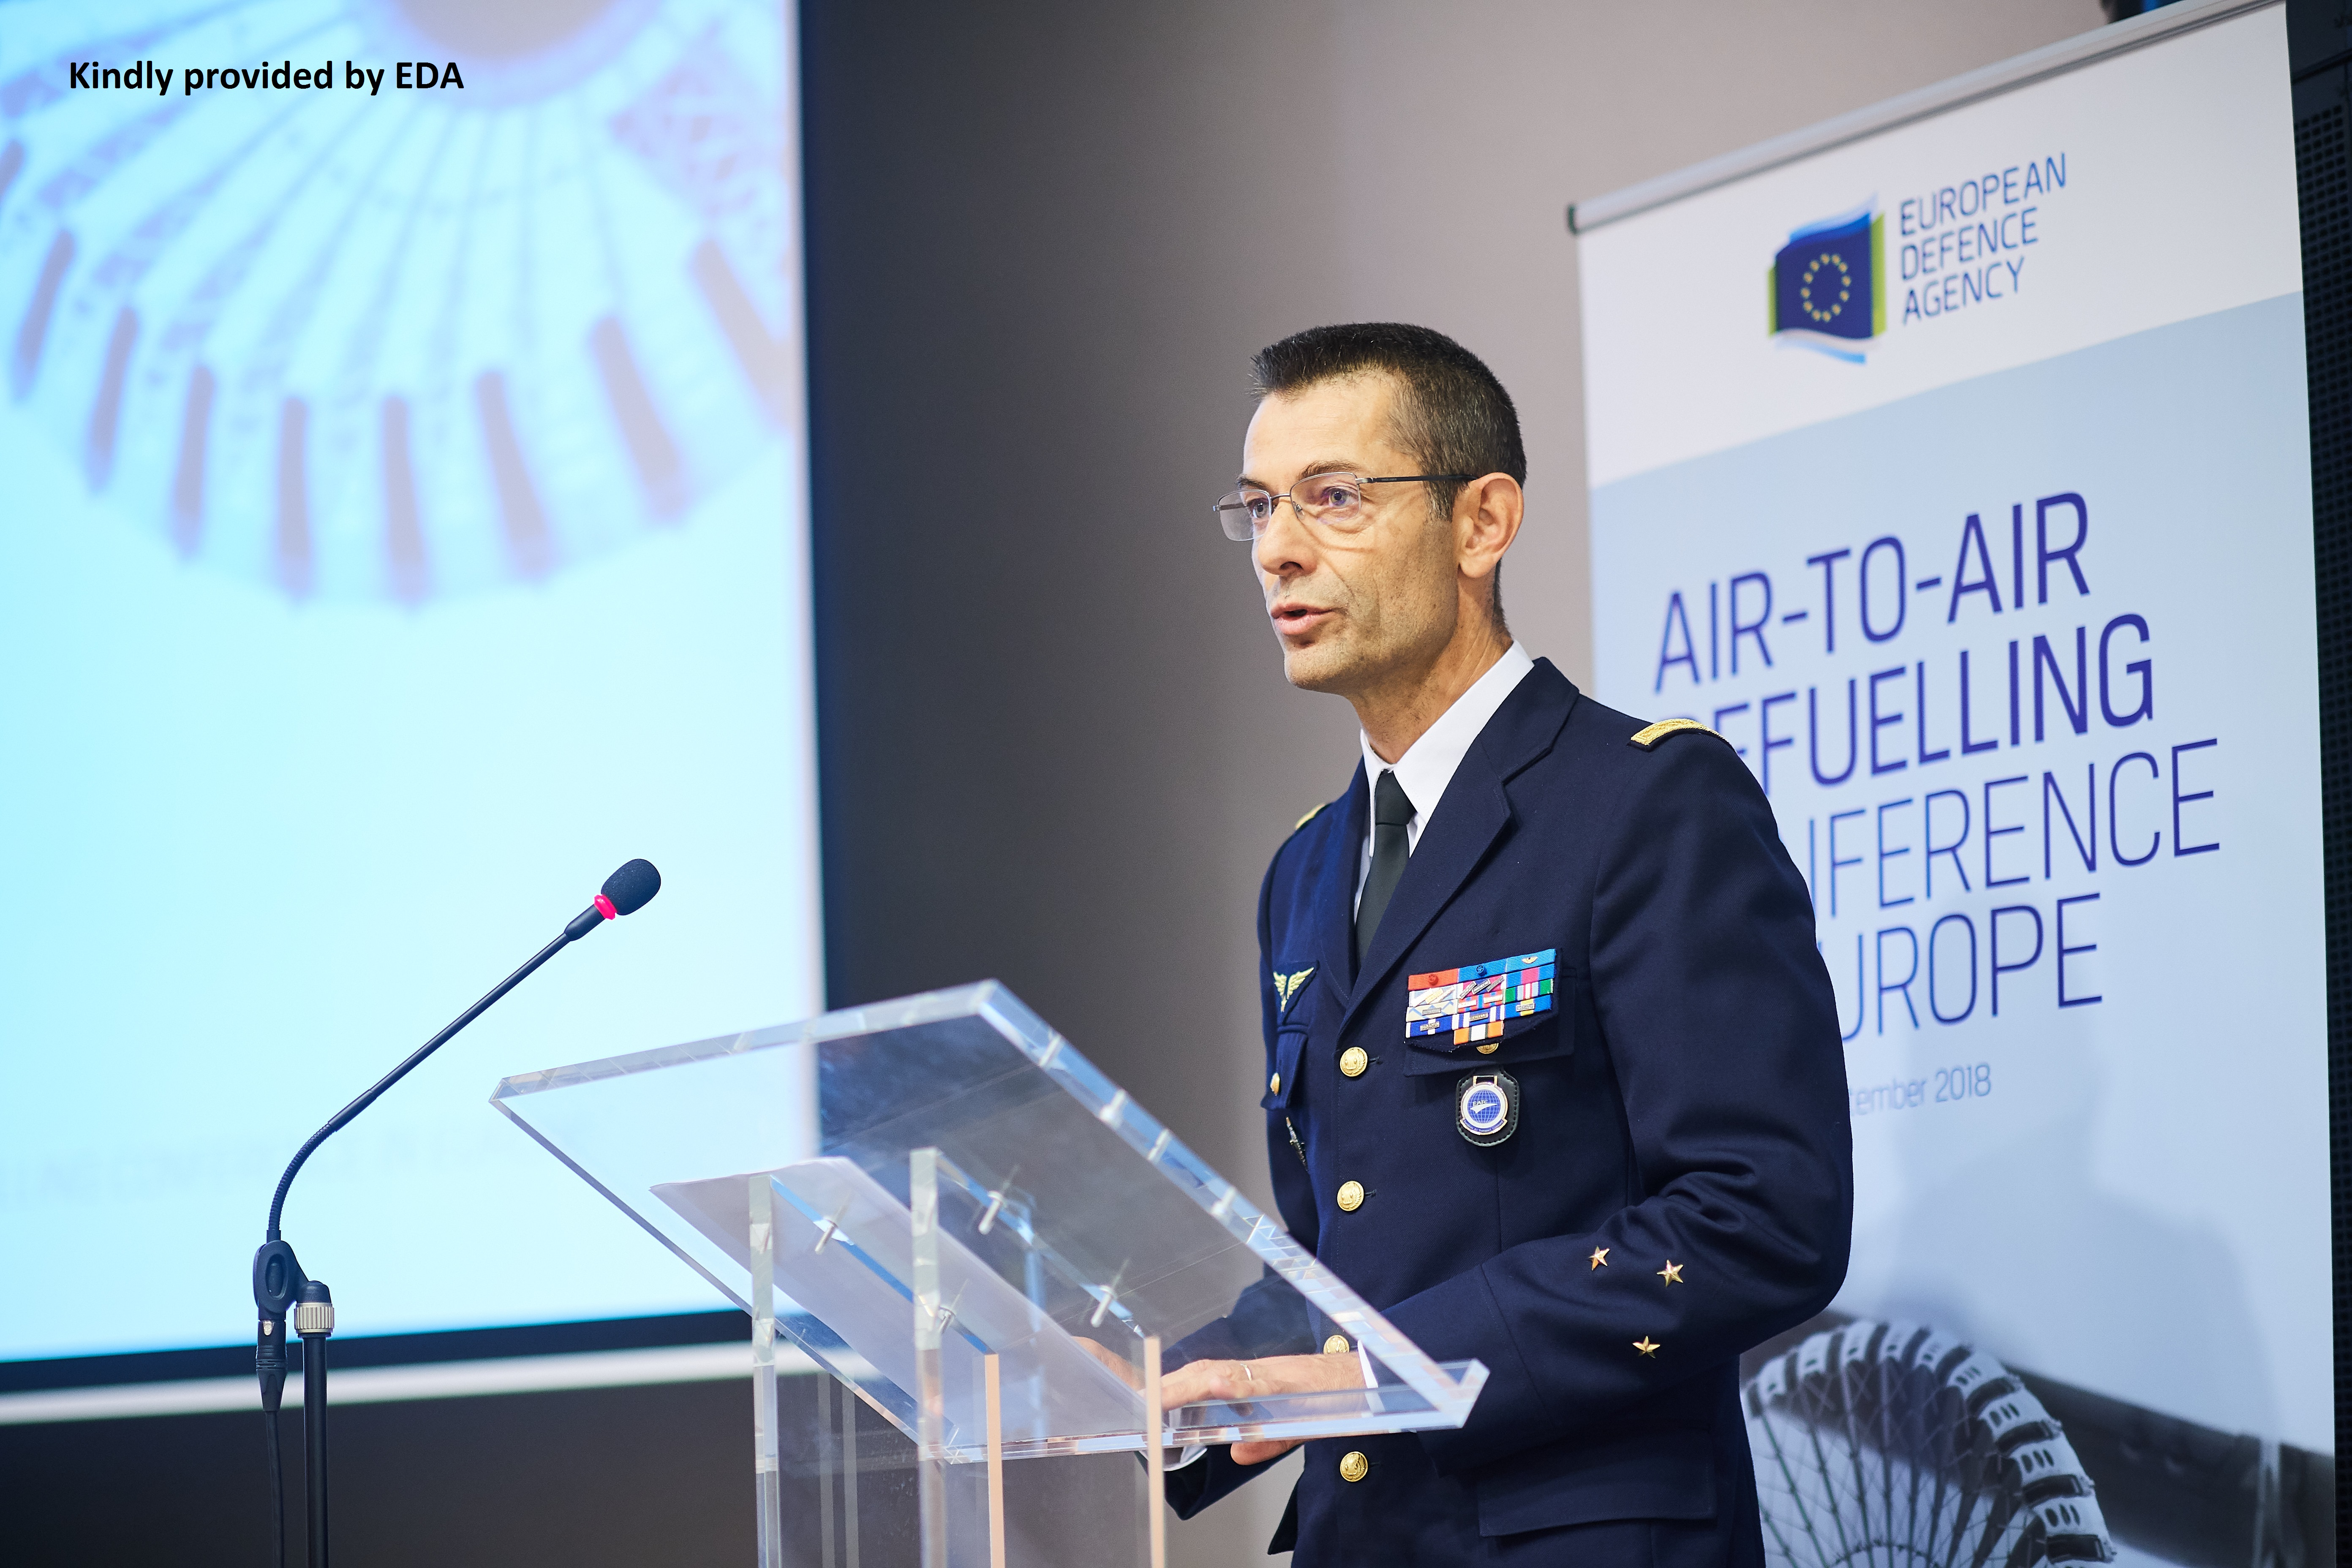 The EATC commander at the first air-to-air refuelling conference in Europe